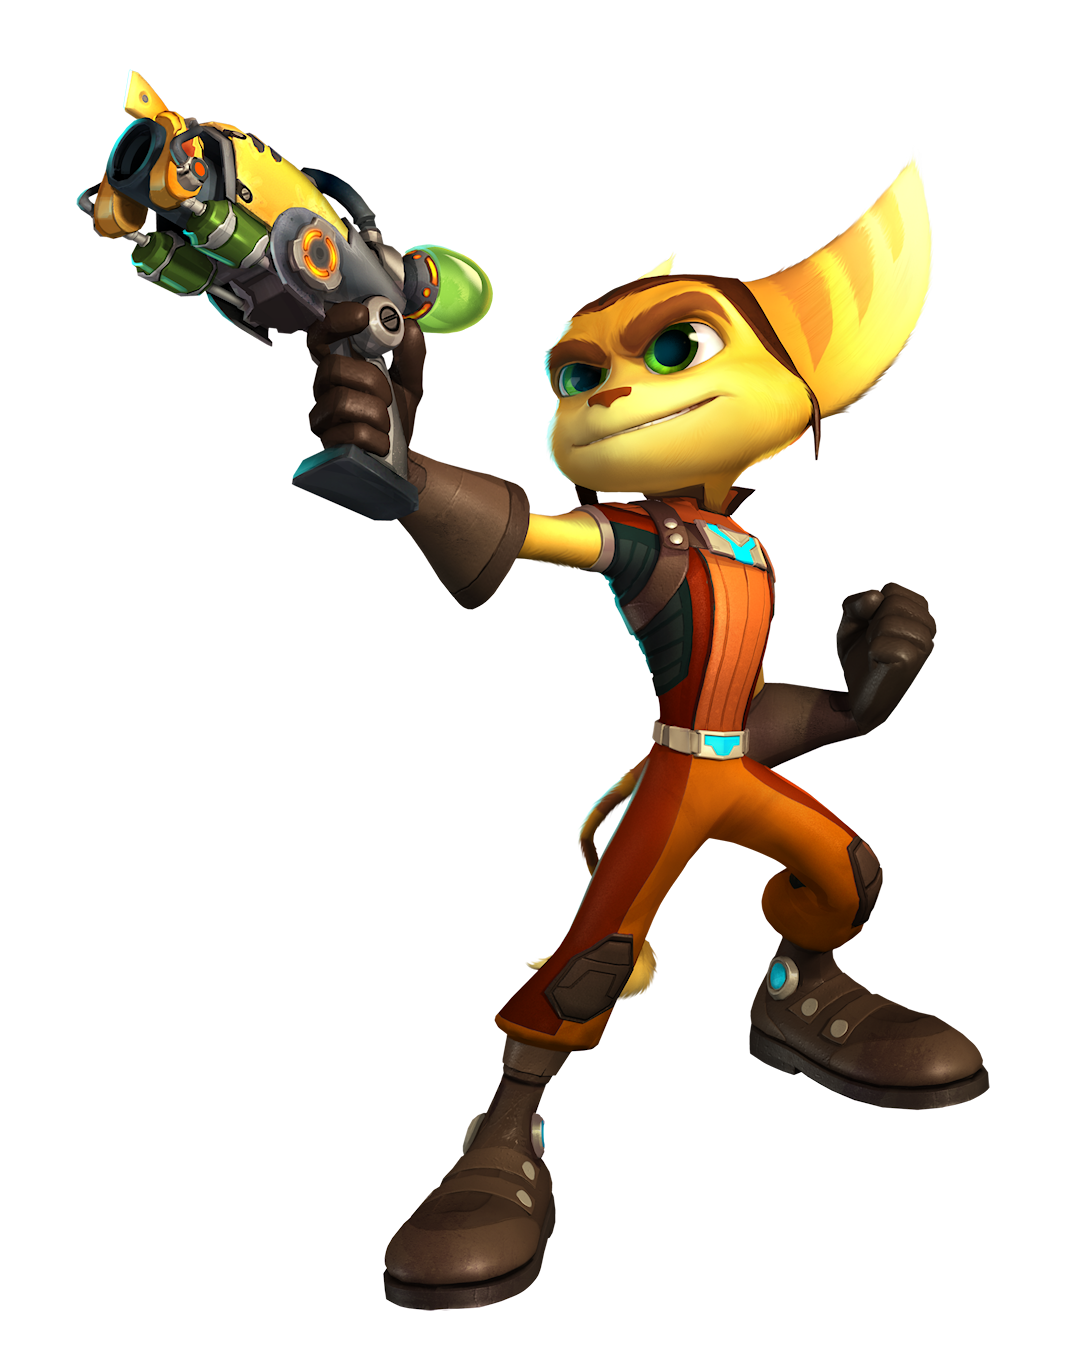 Heroic Ratchet.png - Ratchet Clank HD PNG